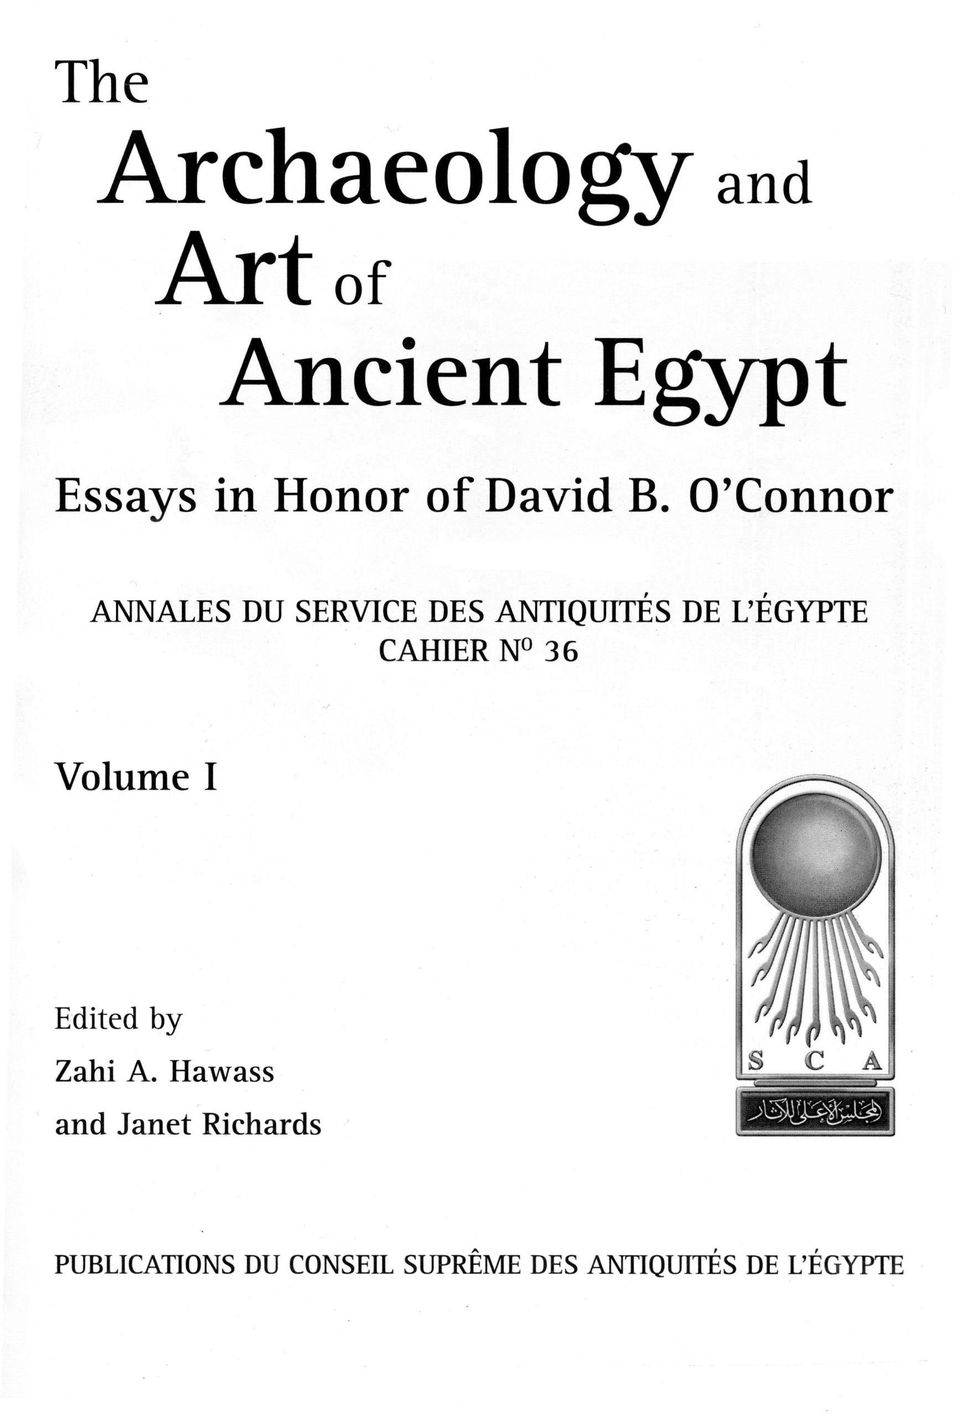 English Essay Com Oconnor Annales Du Service Des Antiquites De Legypte Essay About Business also Essay Health Care The Archaeology And Artaf Ancient Egypt Essays In Honor Of David  High School Reflective Essay Examples